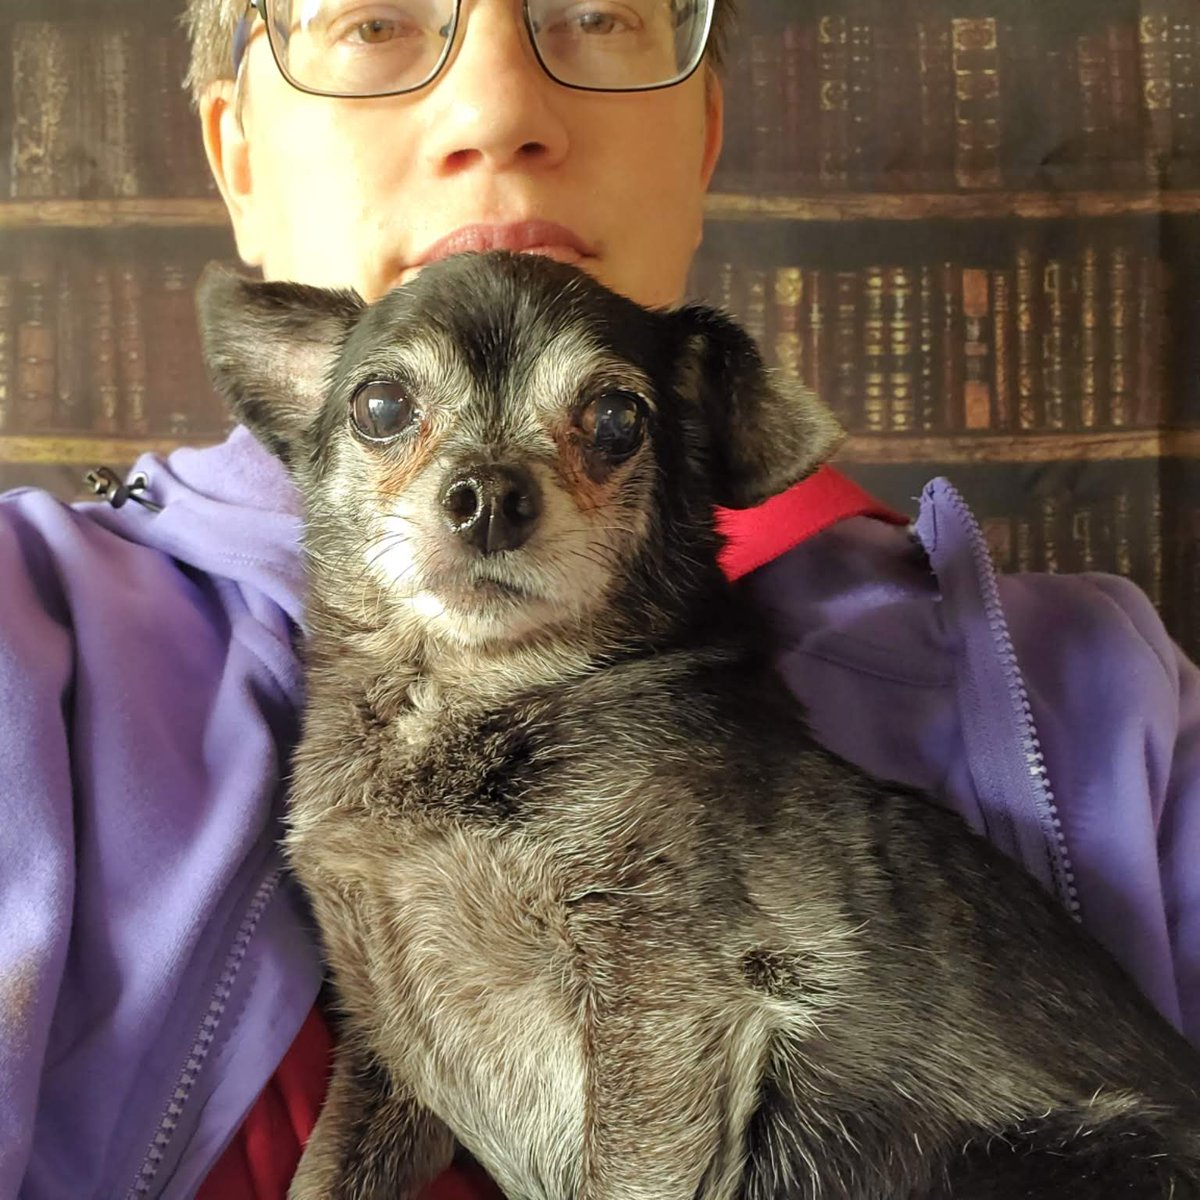 """The Human Scribe has started taking the dogs' photo backdrops and putting them behind her in her """"office"""". Today she and Remy worked from The Library.  #fun #dogsinmanagement #dogsoftwitterpic.twitter.com/YAidGUSsYq"""